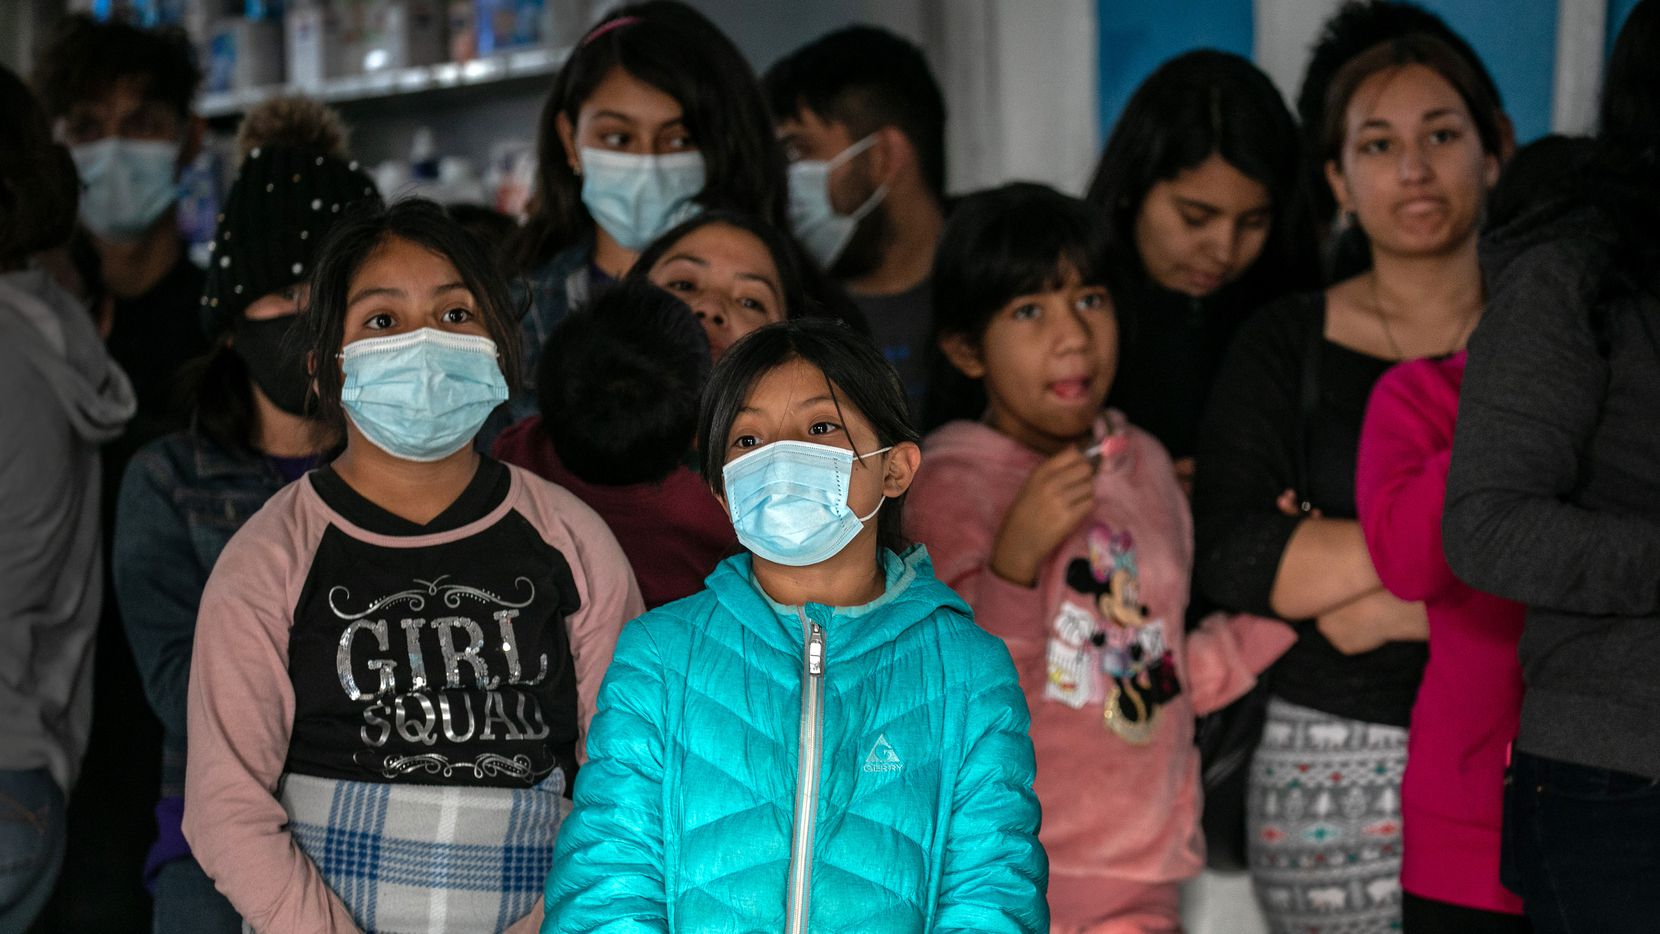 Asylum seekers at an immigrant shelter on March 16, 2021 in Ciudad Juarez, across the border from El Paso. A surge of immigrant families and as many as 13,000 unaccompanied minors now in U.S. custody is causing a humanitarian crisis at the U.S.-Mexico border.